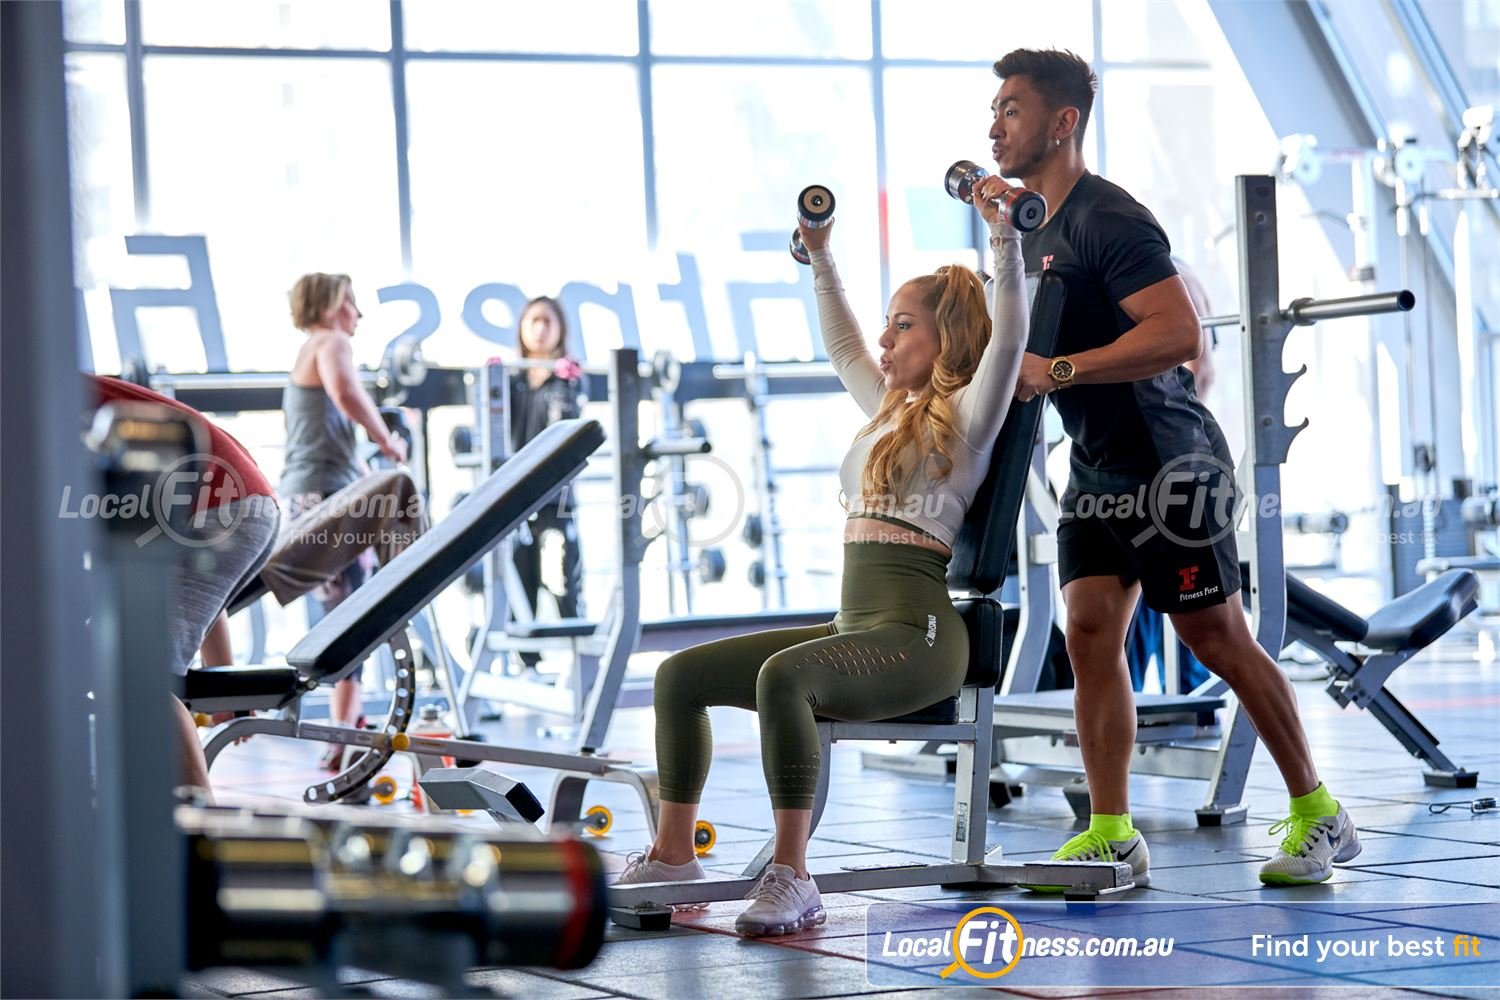 Fitness First QV Platinum Melbourne Our free-weights area inc. dumbbells, barbells, benches and more.